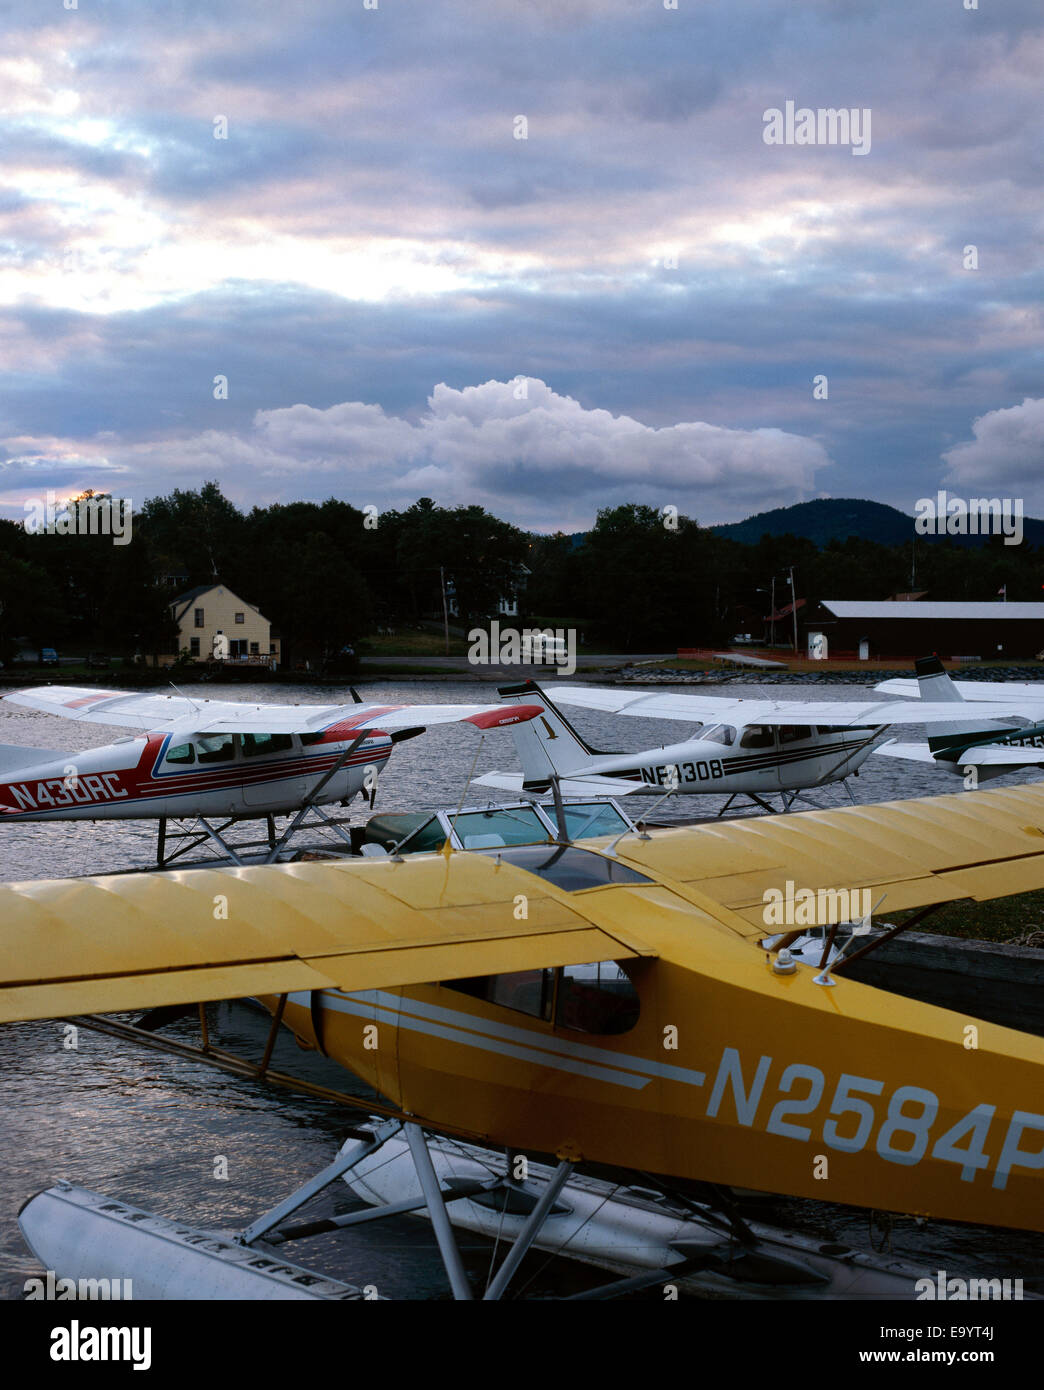 small sea planes docked on lake at Maine at dusk - Stock Image